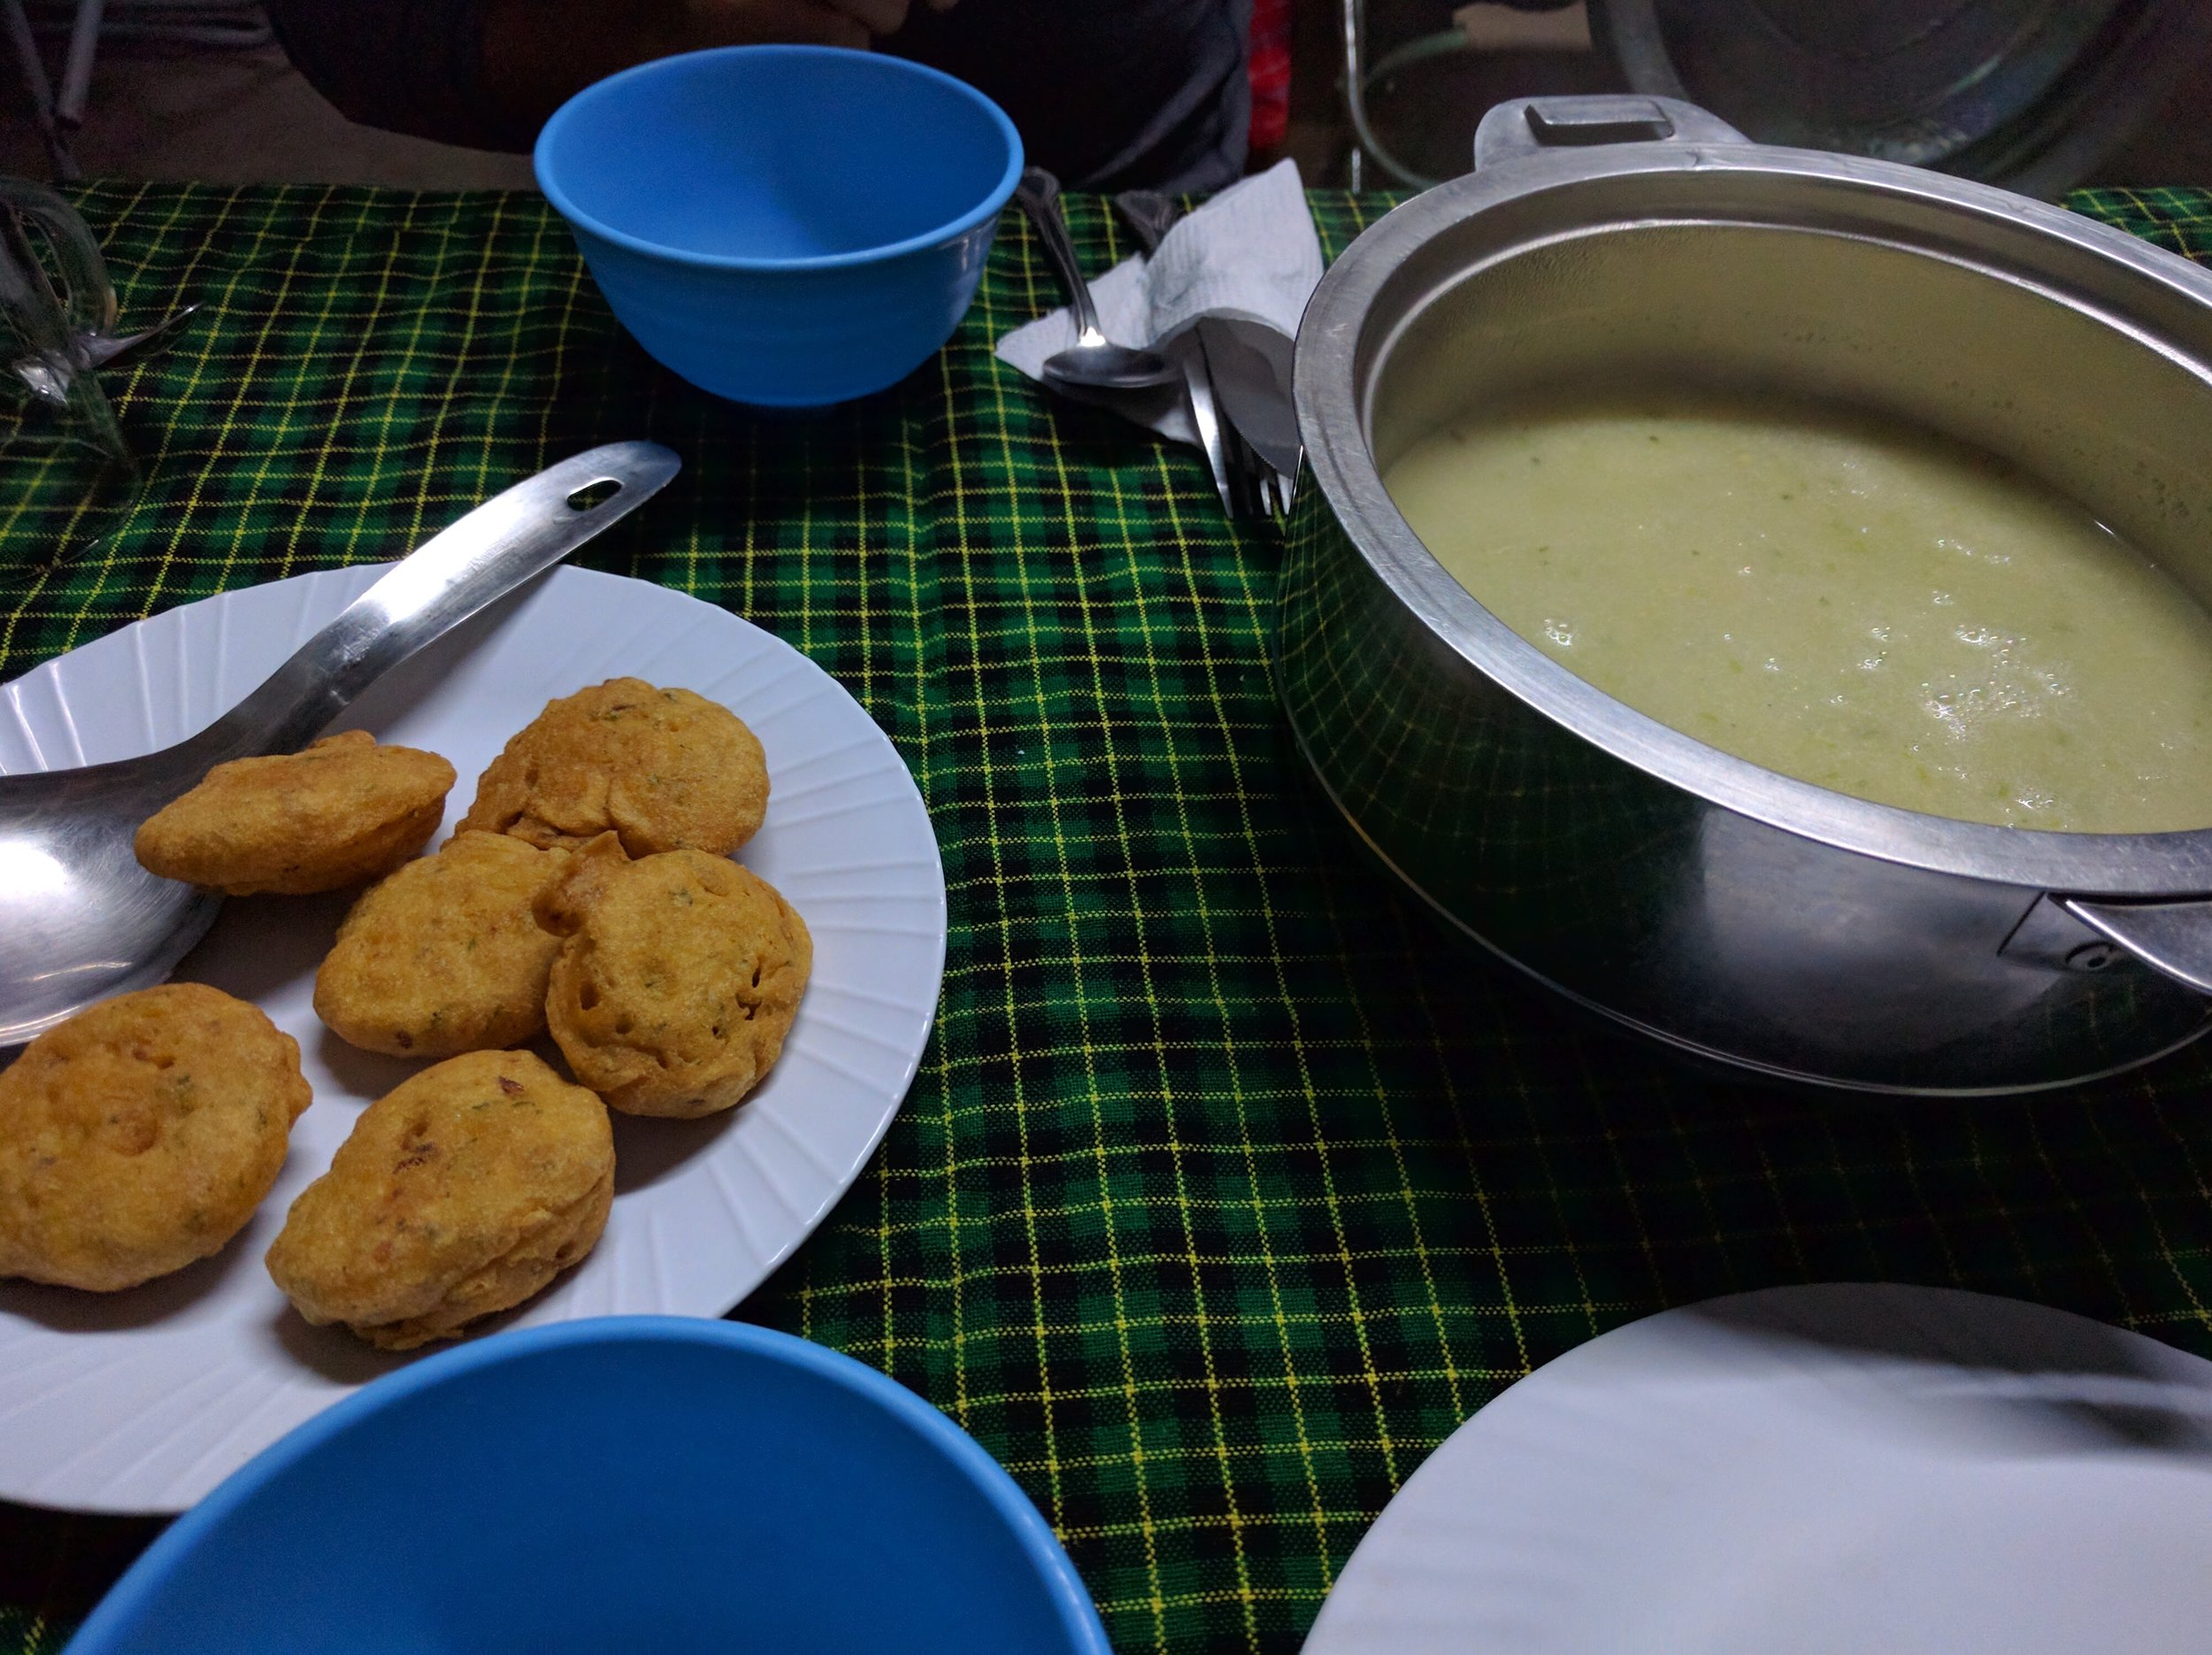 Lentil cakes and soup for the 1st course